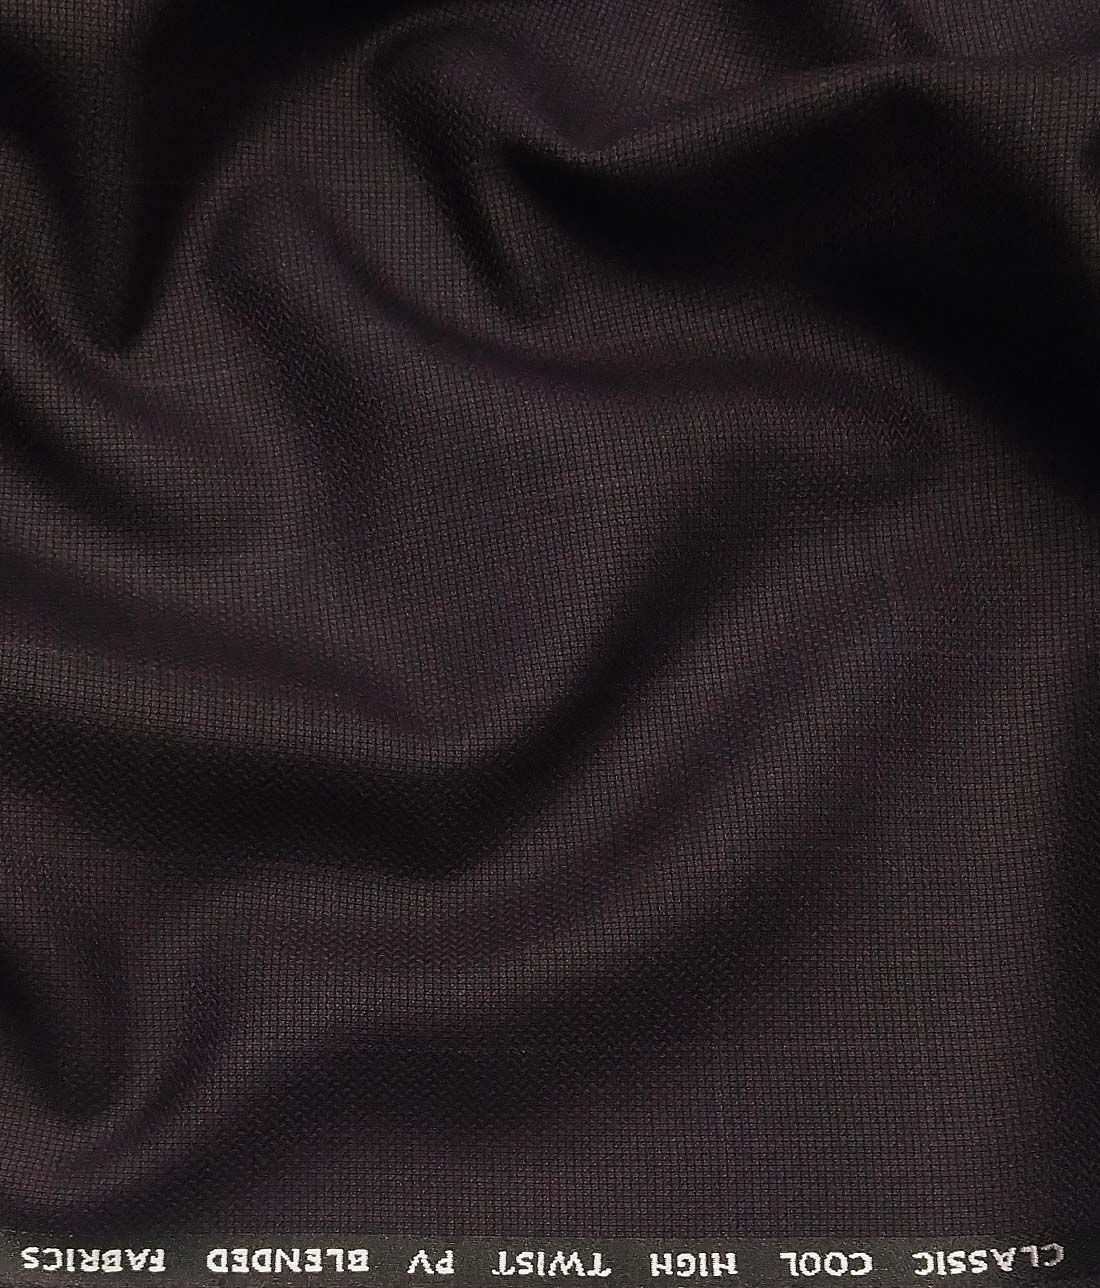 1881f10930a J.Hamsptead by Siyaram s Dark Wined Polyester Viscose Structured Cum Self  Checks Unstitched Suiting Fabric